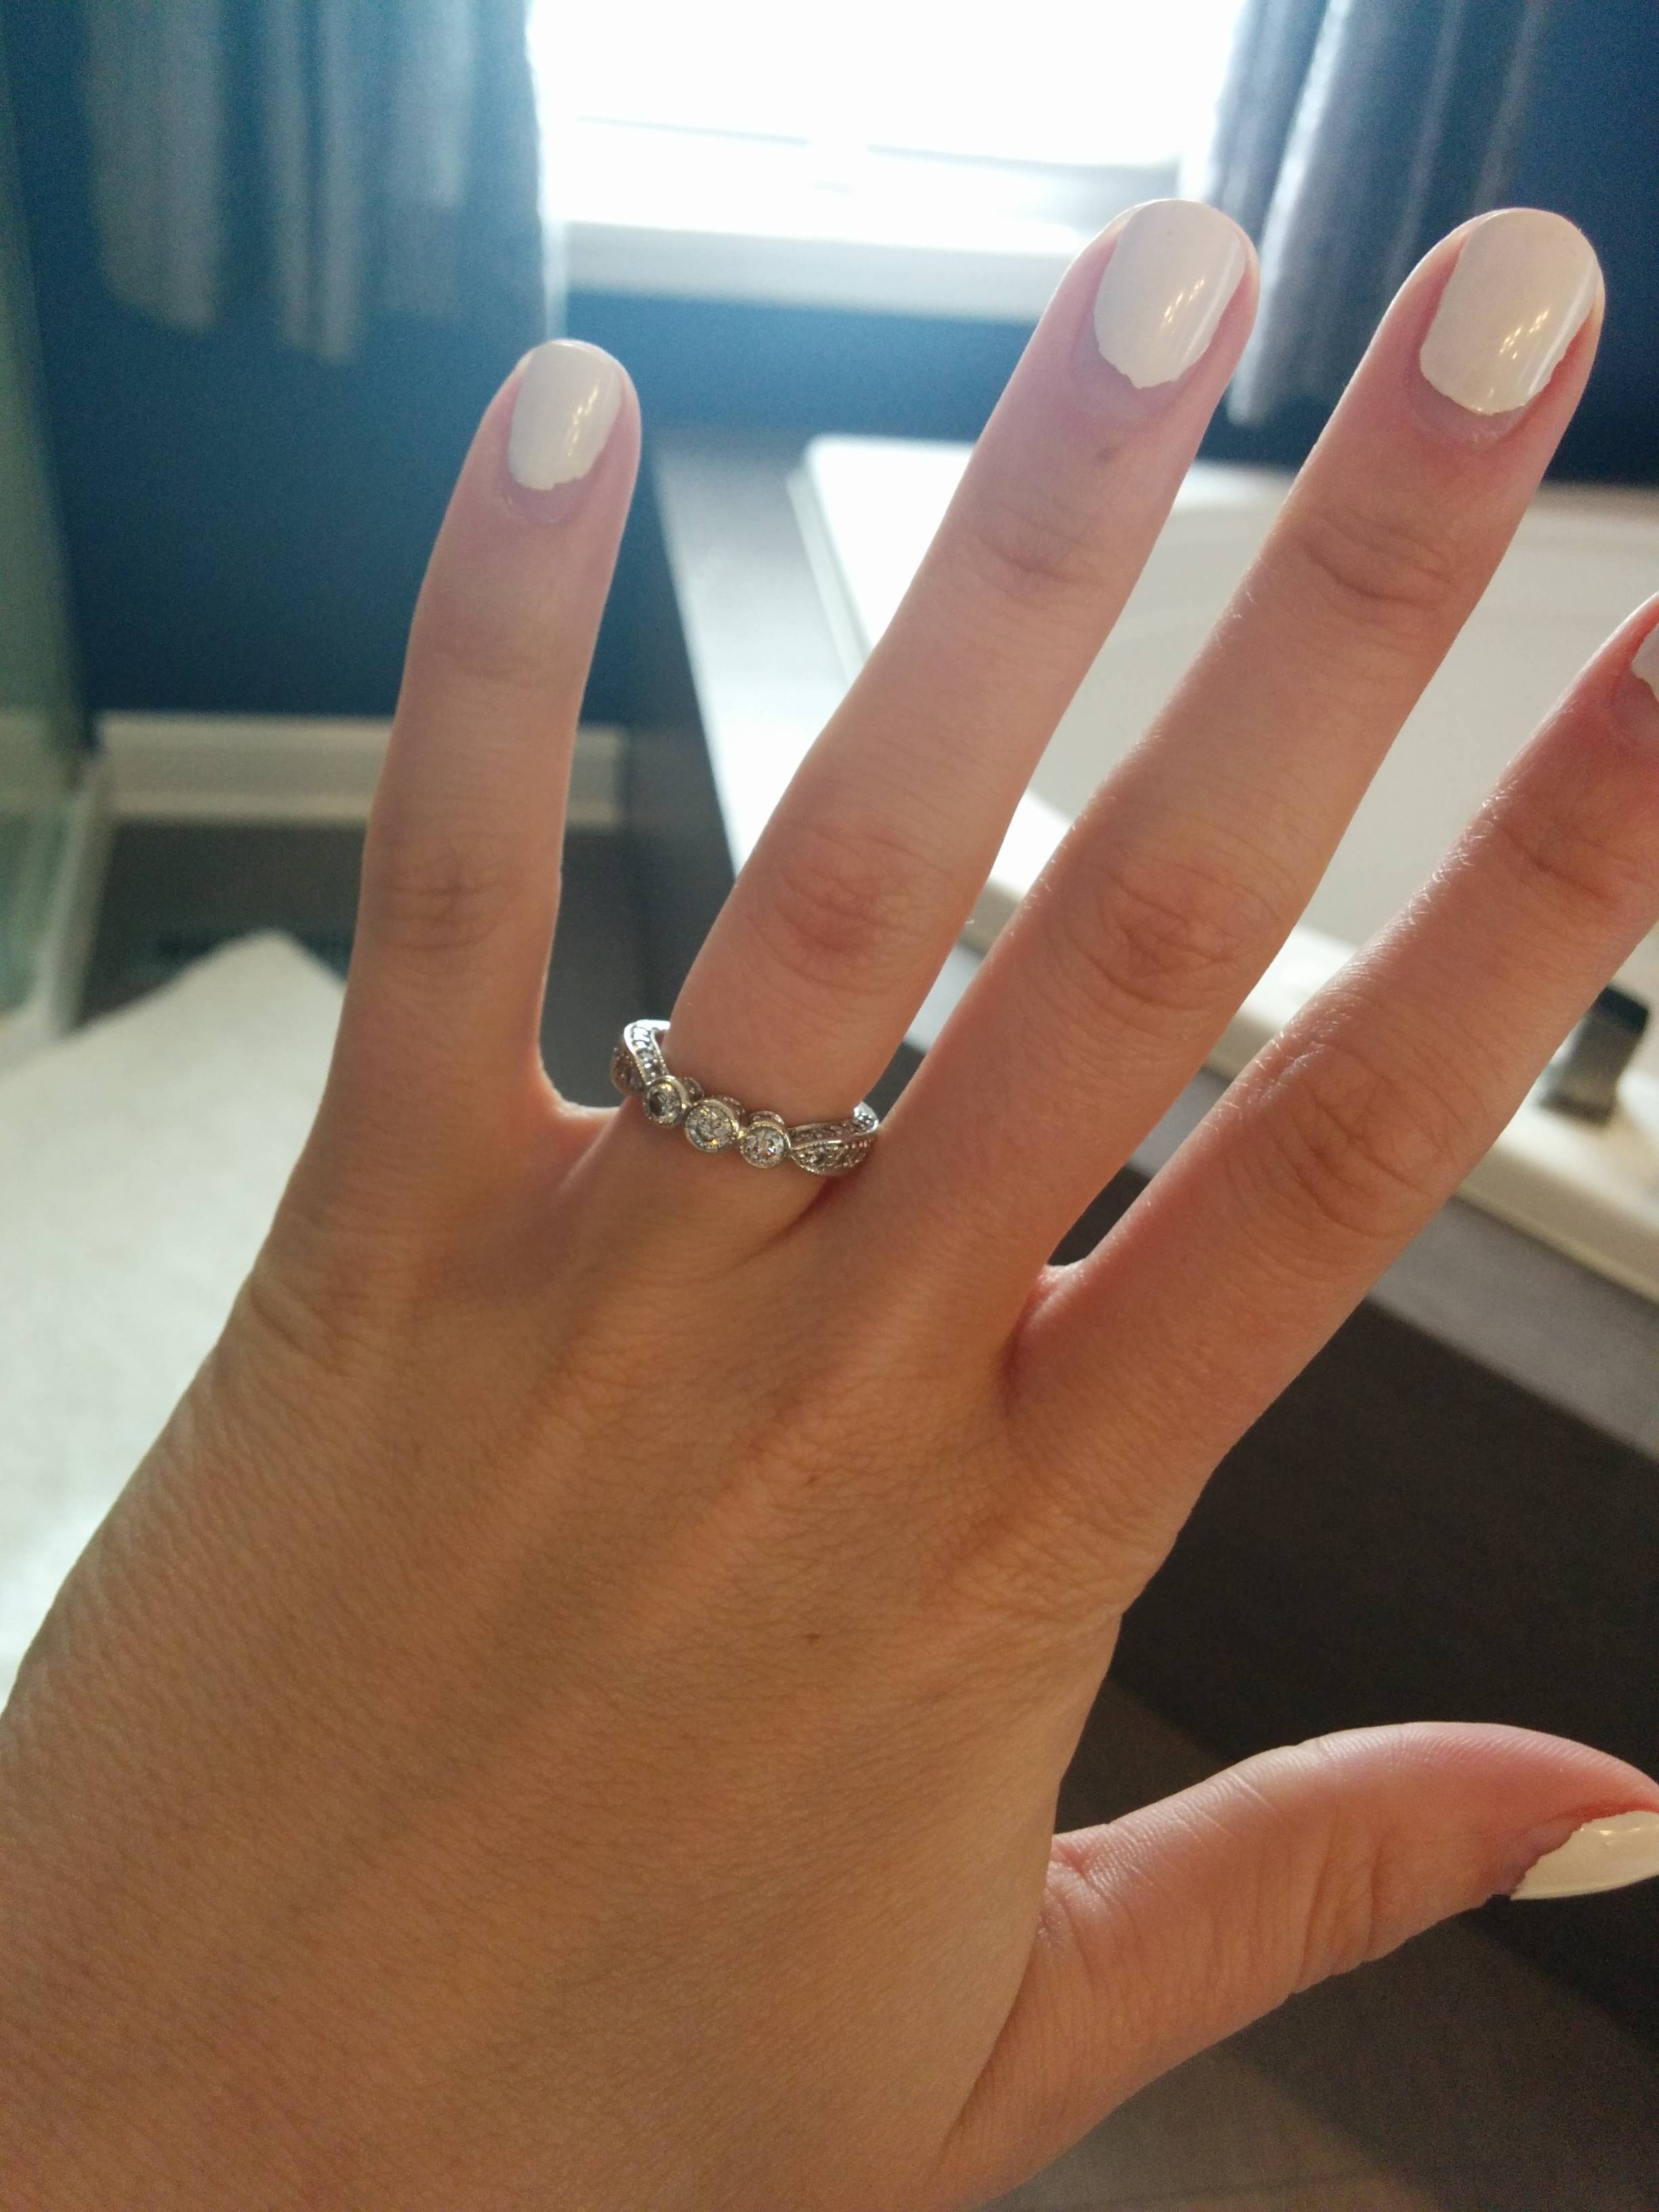 10Th Anniversary Ring Upgrade Help! – Weddingbee Throughout Most Current Ten Year Wedding Anniversary Rings (View 2 of 25)